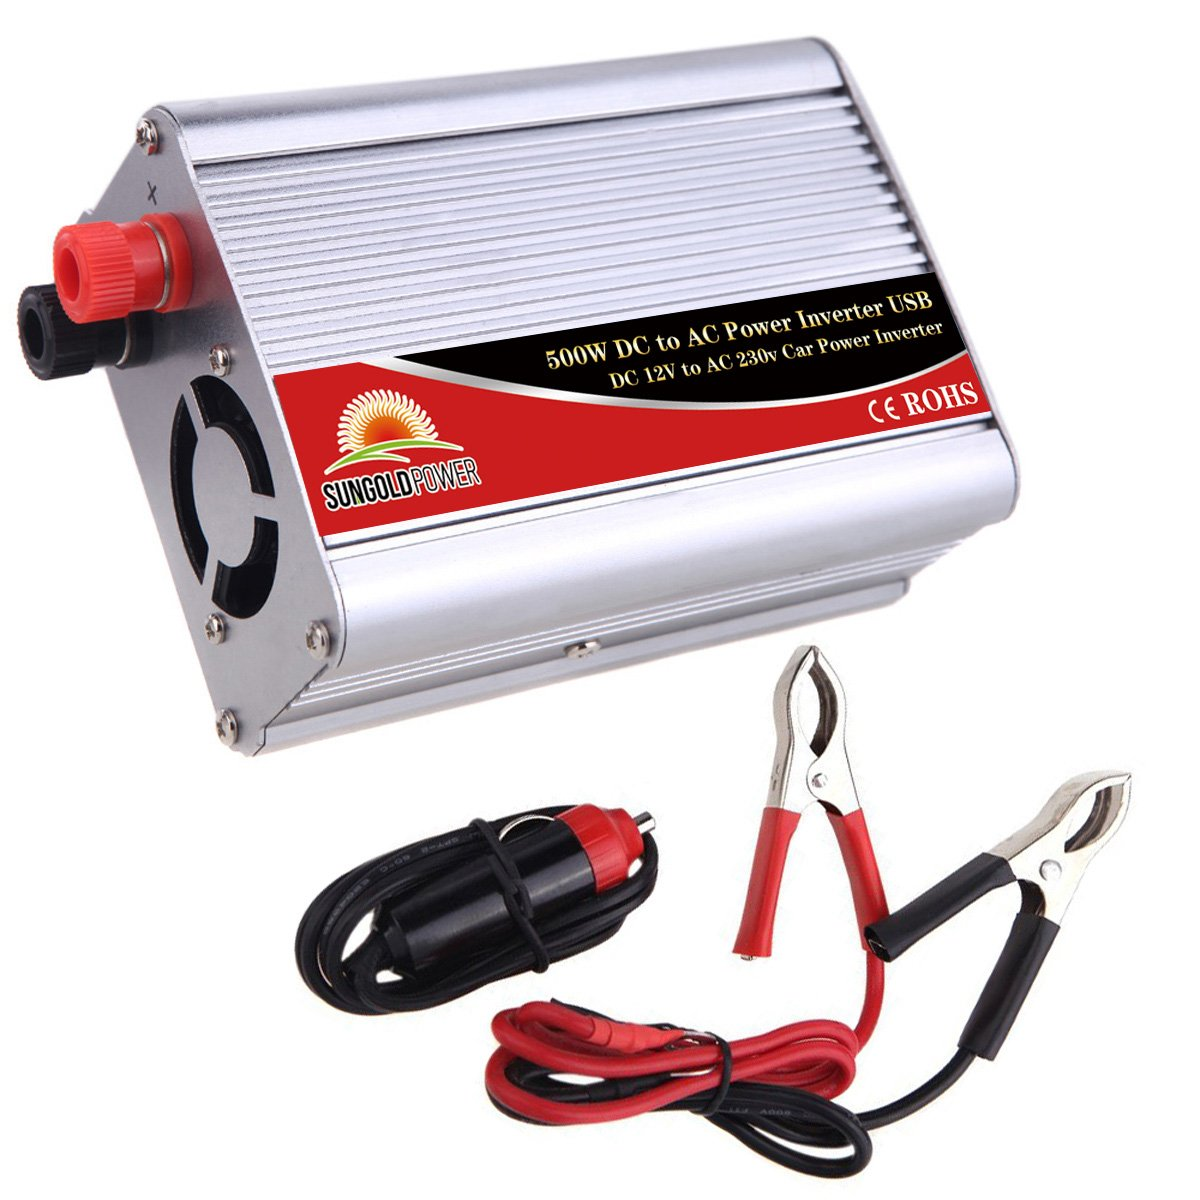 GoldPower Car Power Inverter Modified Wave 500W 12V DC to 220V/230V/240V AC Connection USB Port With Battery Cables with Clips Built-in Fan